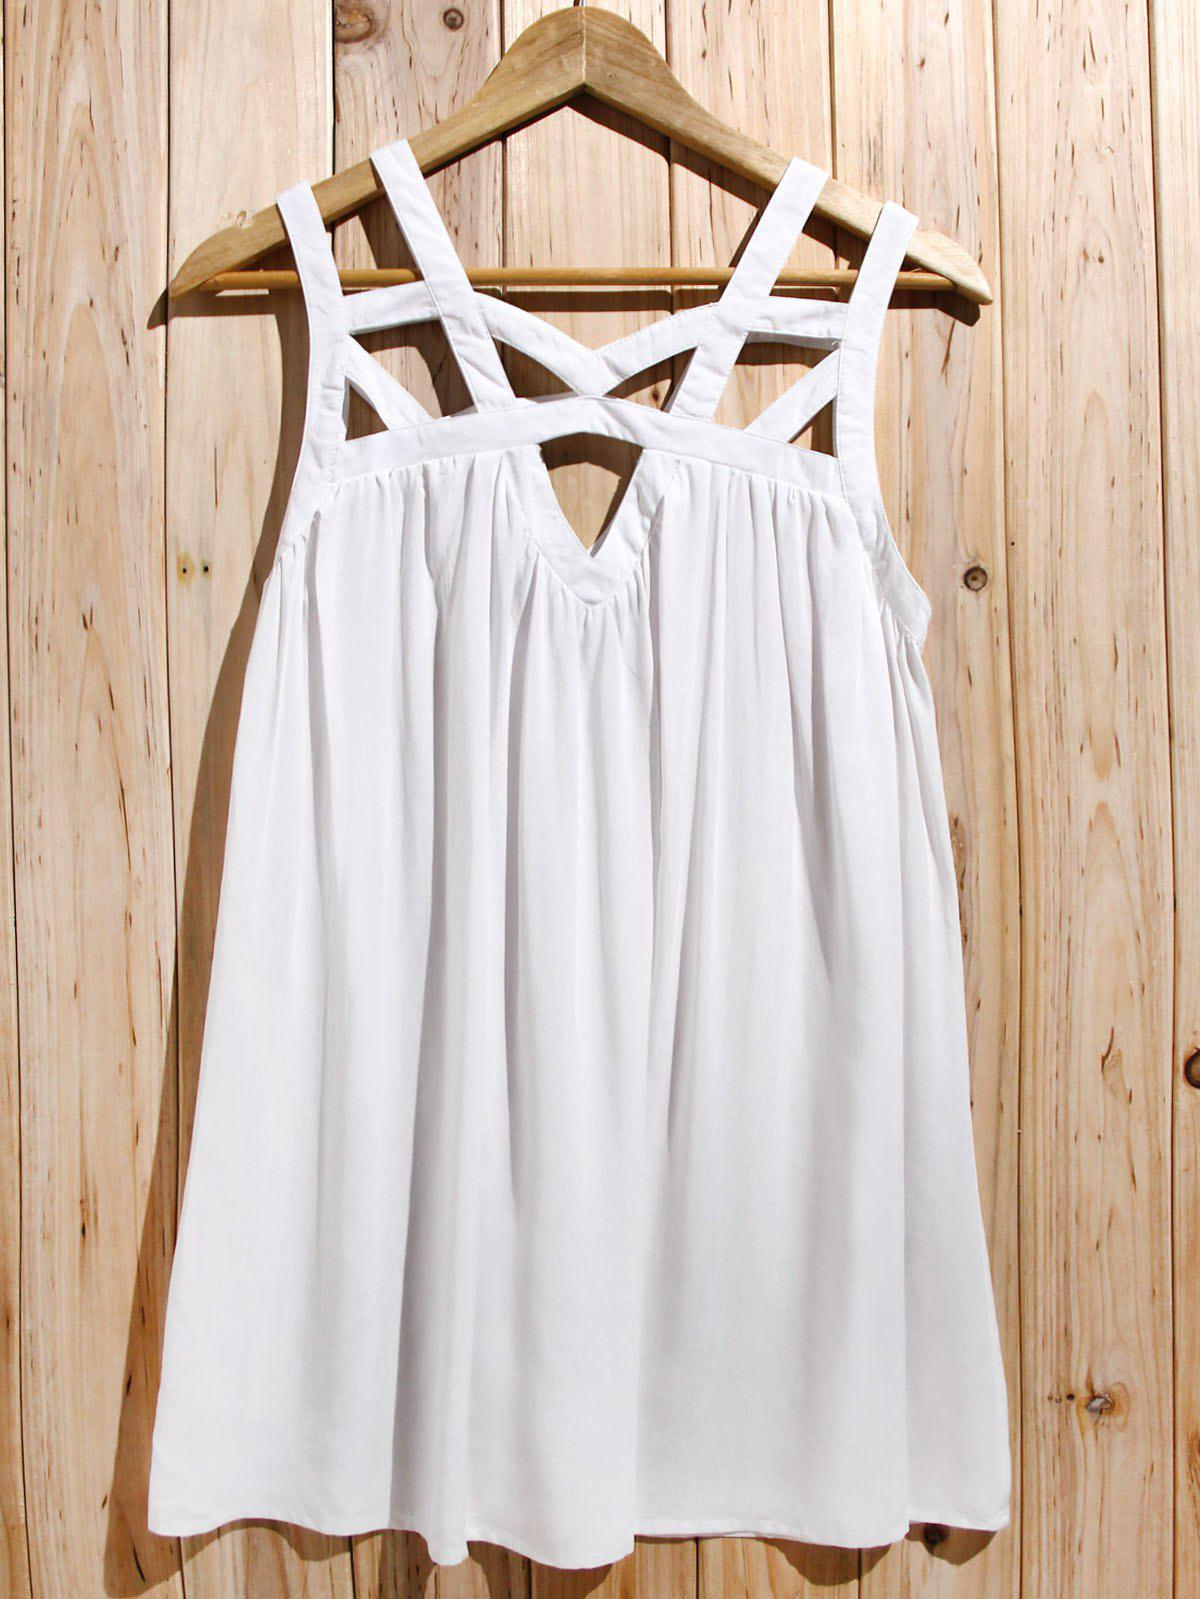 Endearing White Cut Out Sleeveless Pleated Mini Dress For Women